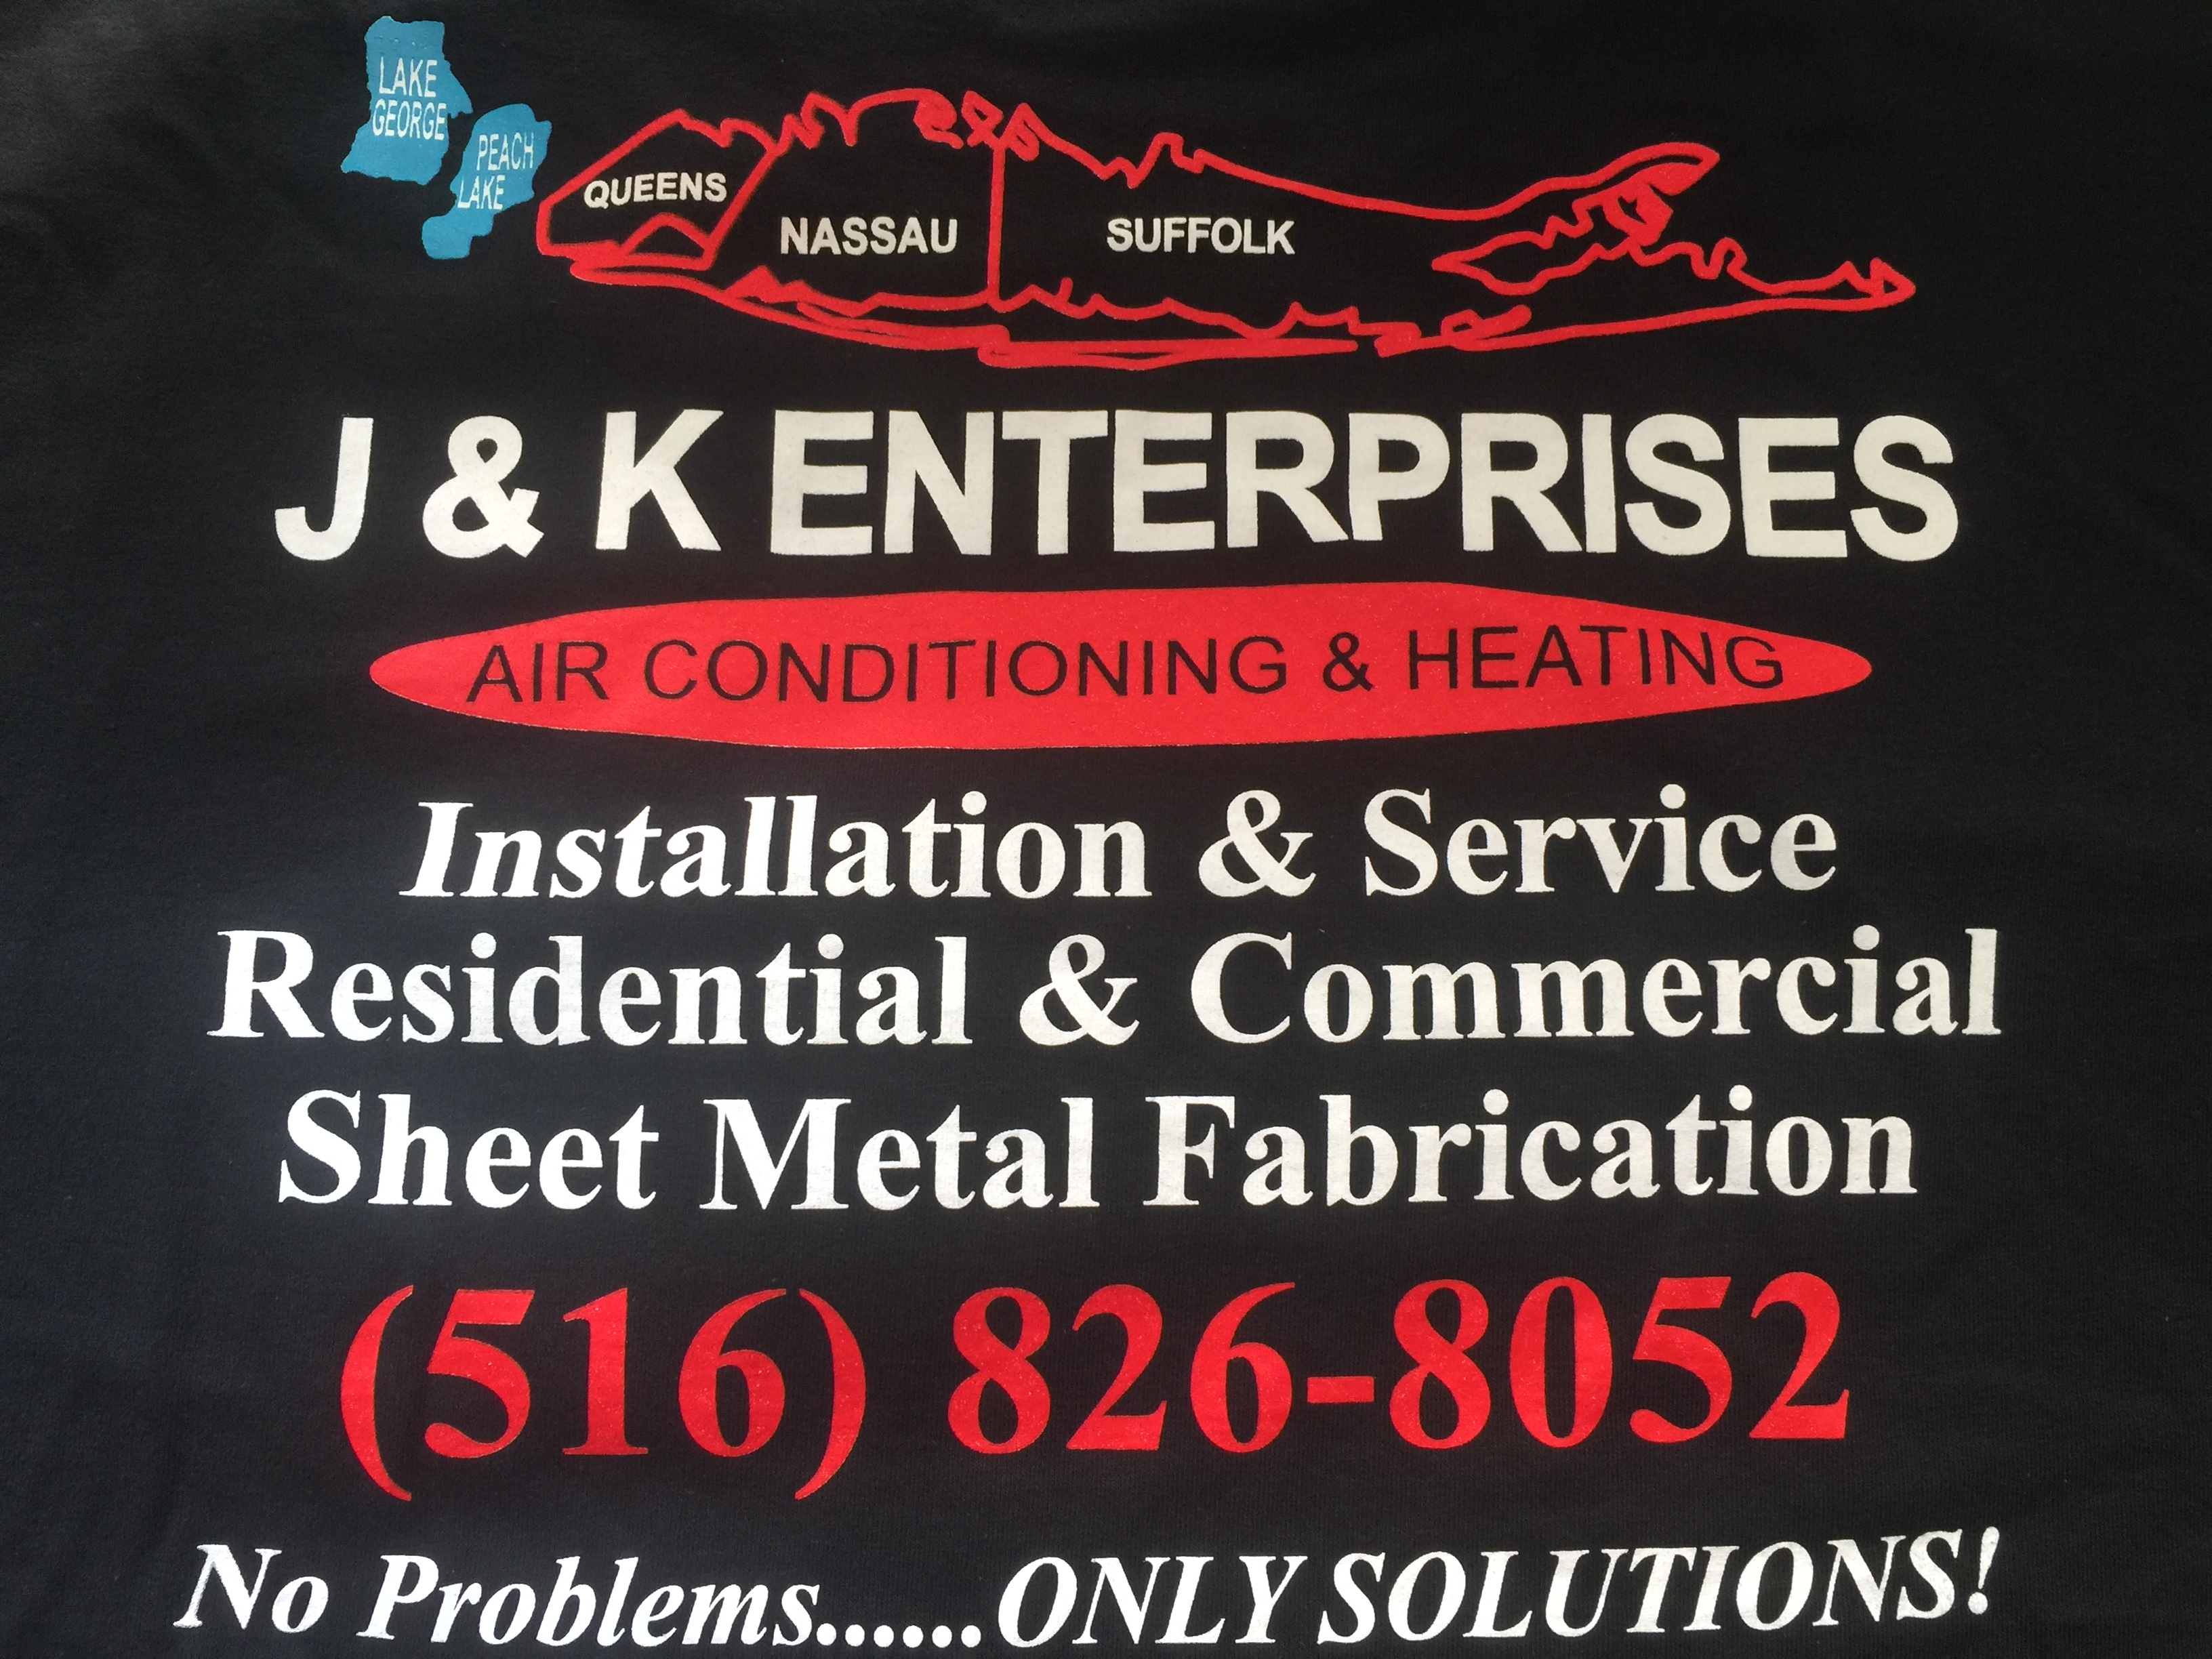 J&K Enterprises Air Conditioning & Heat